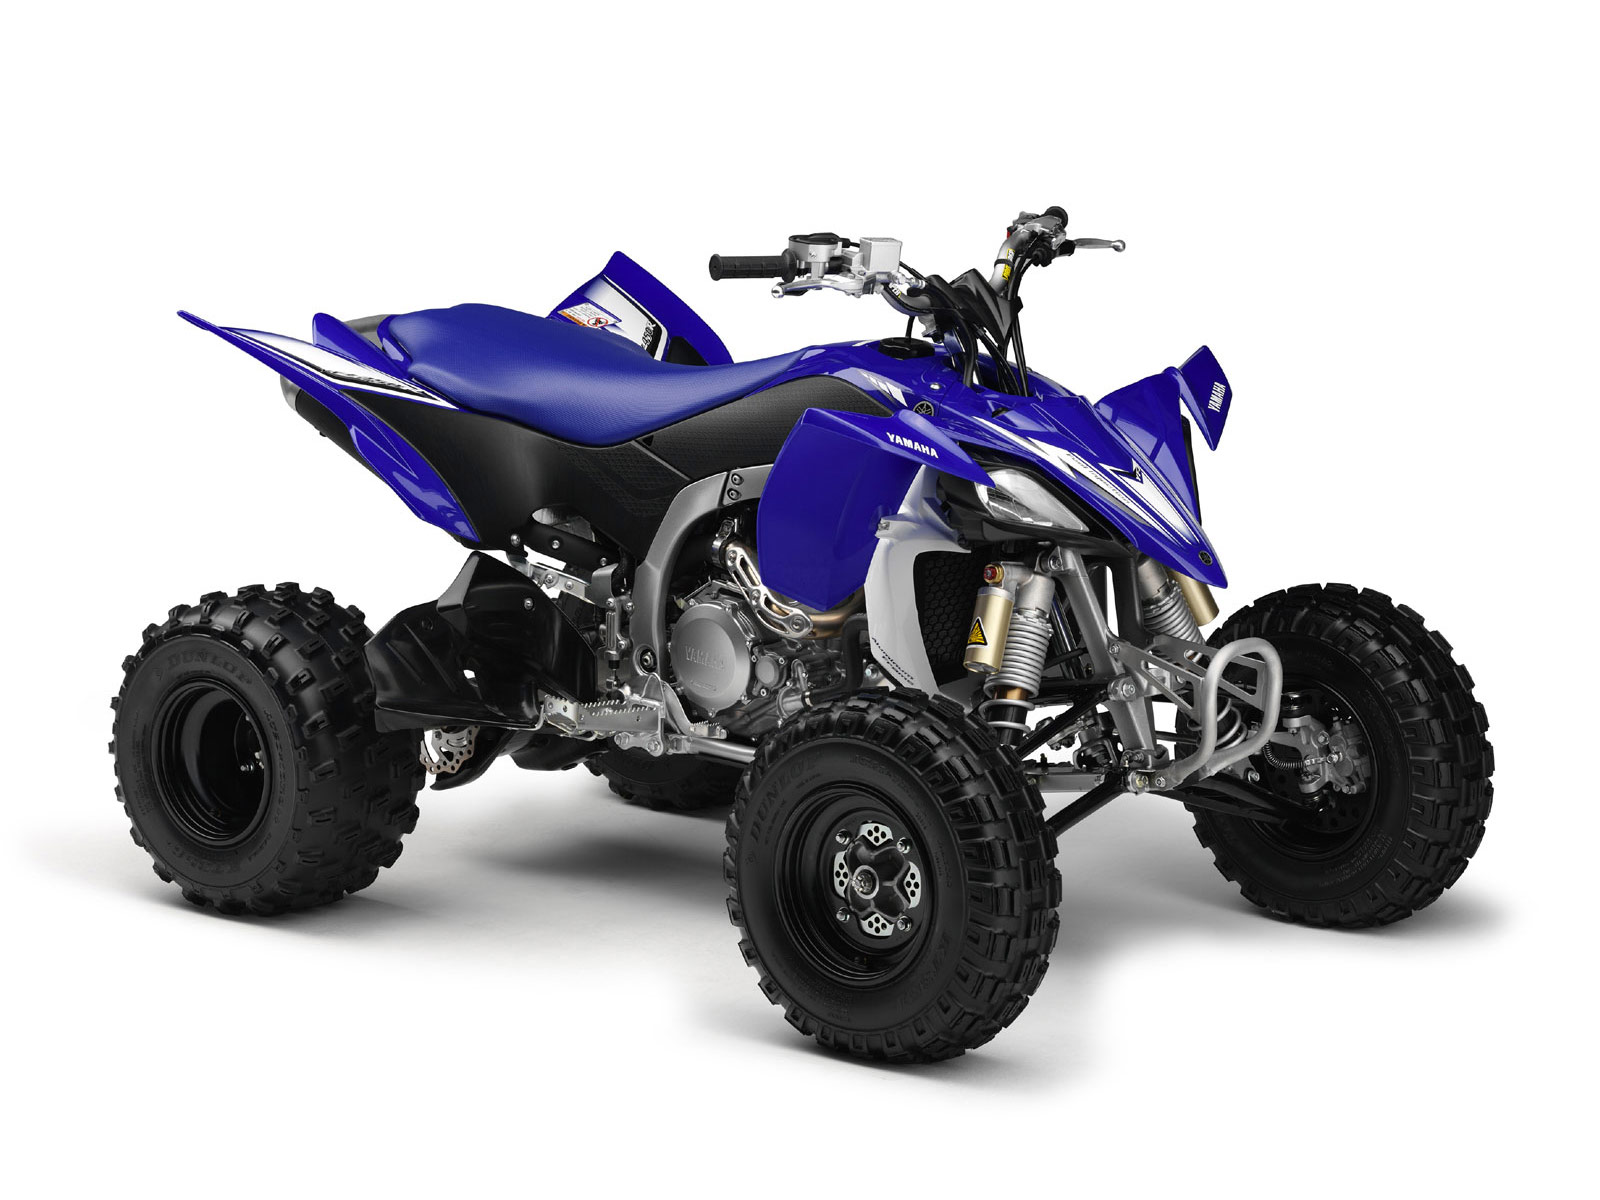 2009 Yamaha Yfz450r Pictures And Specifications 300 Wiring Diagram Media Press Release